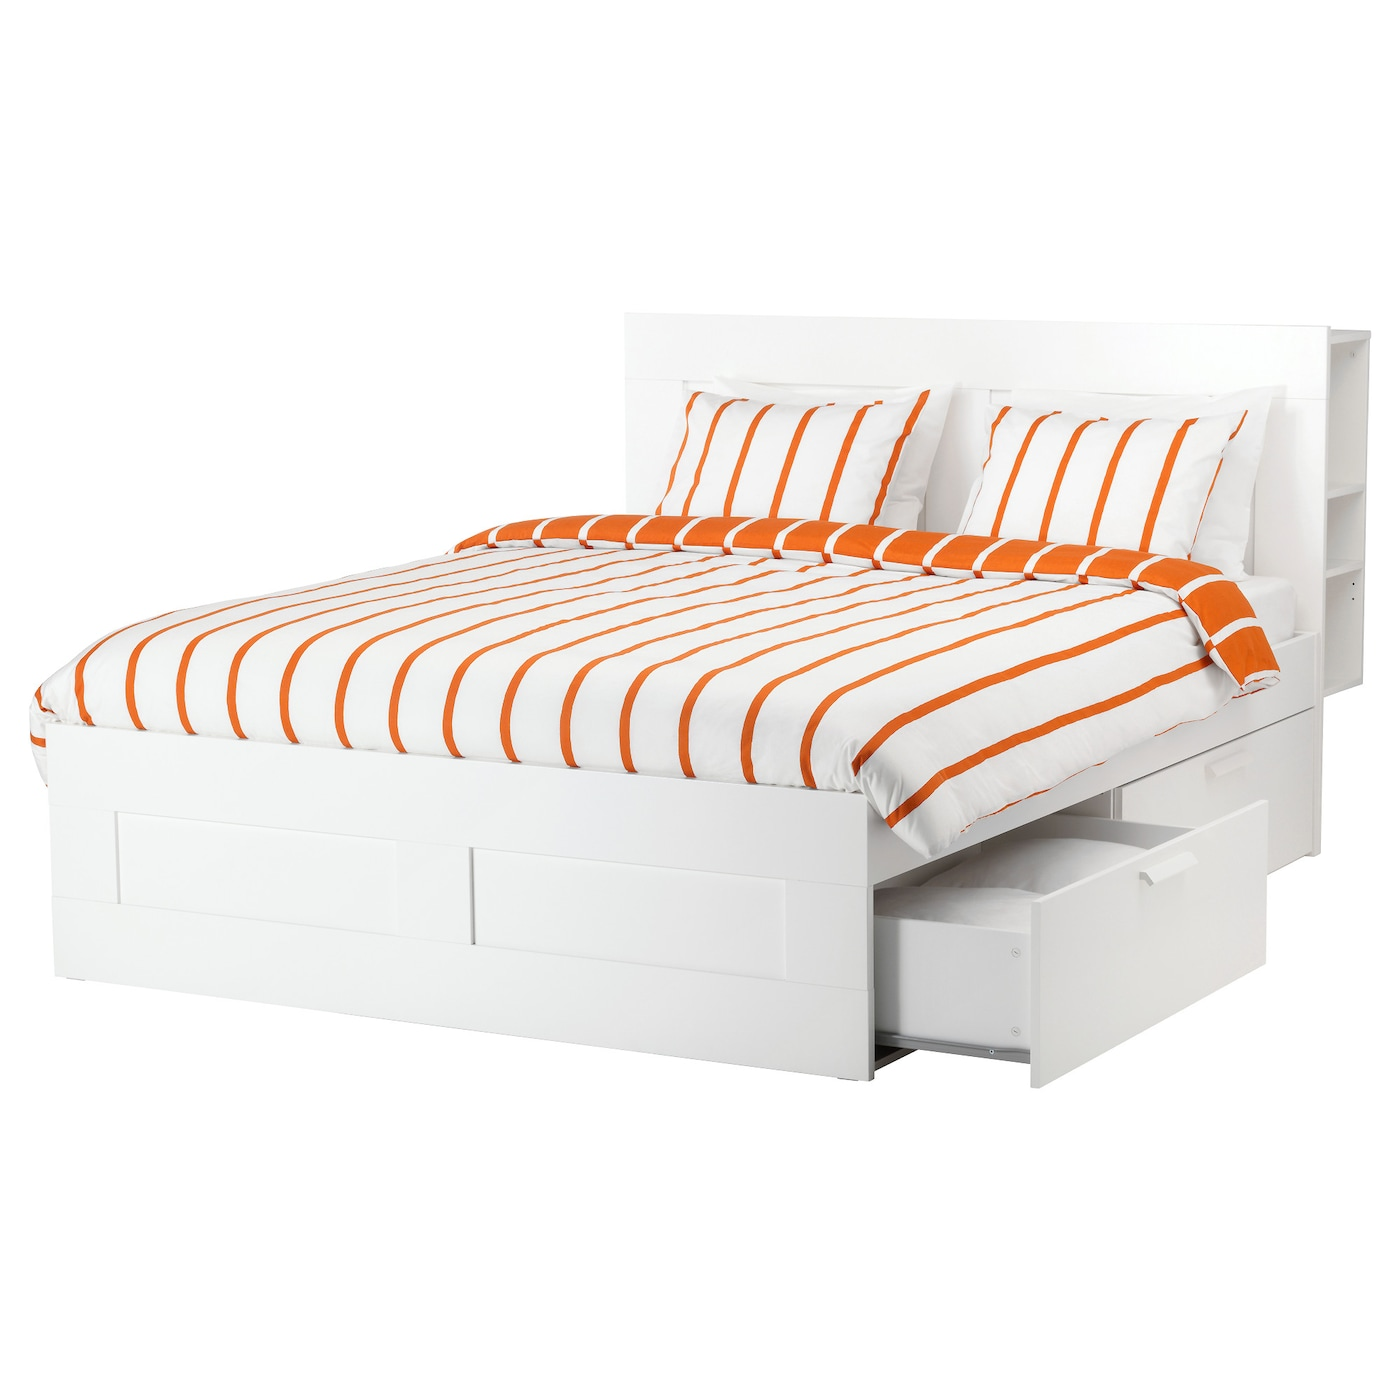 brimnes bed frame w storage and headboard white lur y